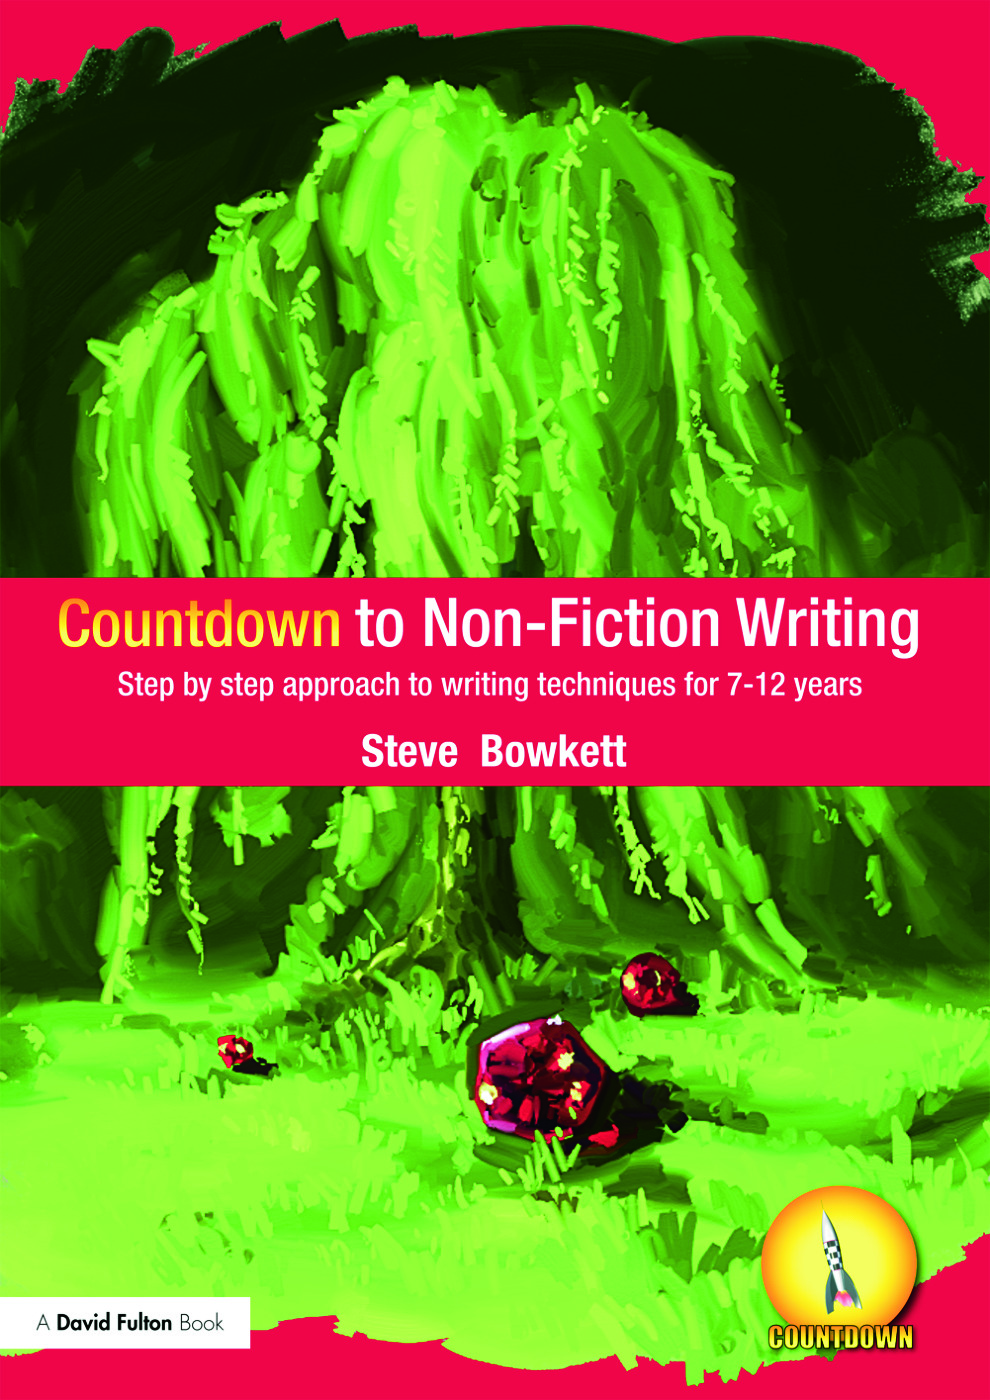 Countdown to Non-Fiction Writing: Step by Step Approach to Writing Techniques for 7-12 Years (Paperback) book cover